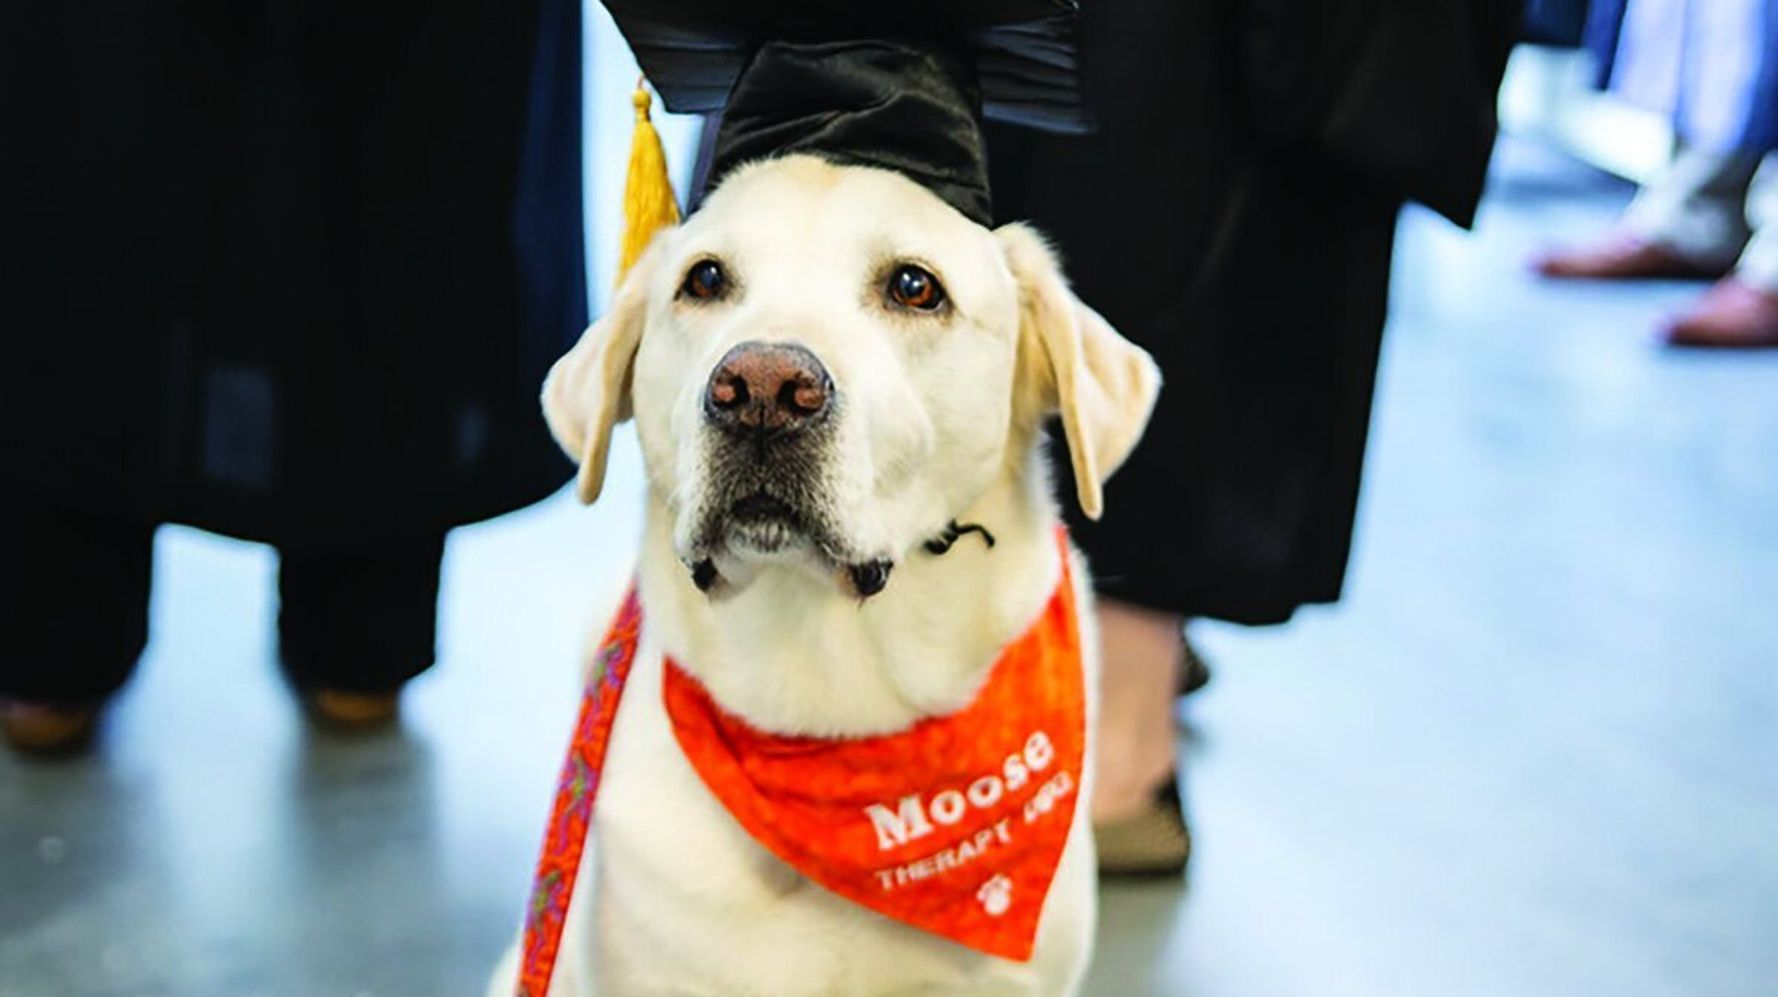 Virginia Tech Therapy Dog Gets Honorary Degree After Years